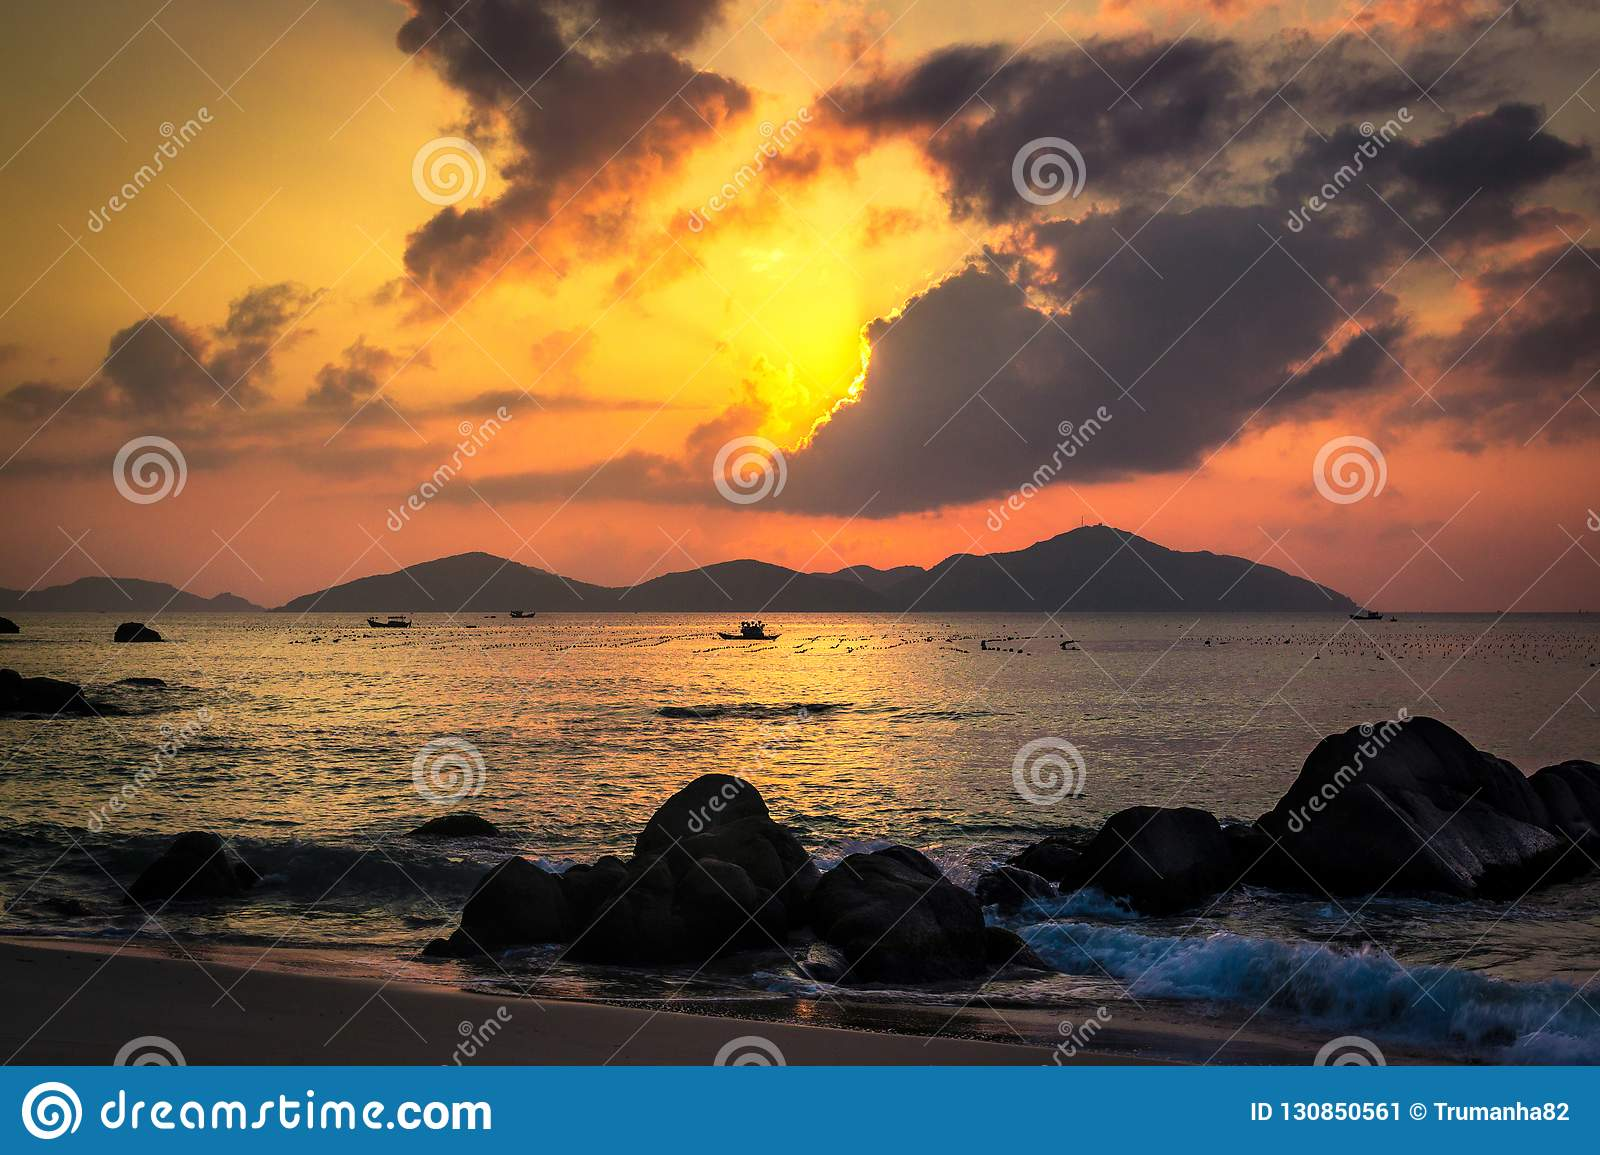 Nature Seascape with Tranquil Beach, Boulders, Islands, Dark Clouds and Hidden Sun at Sunrise